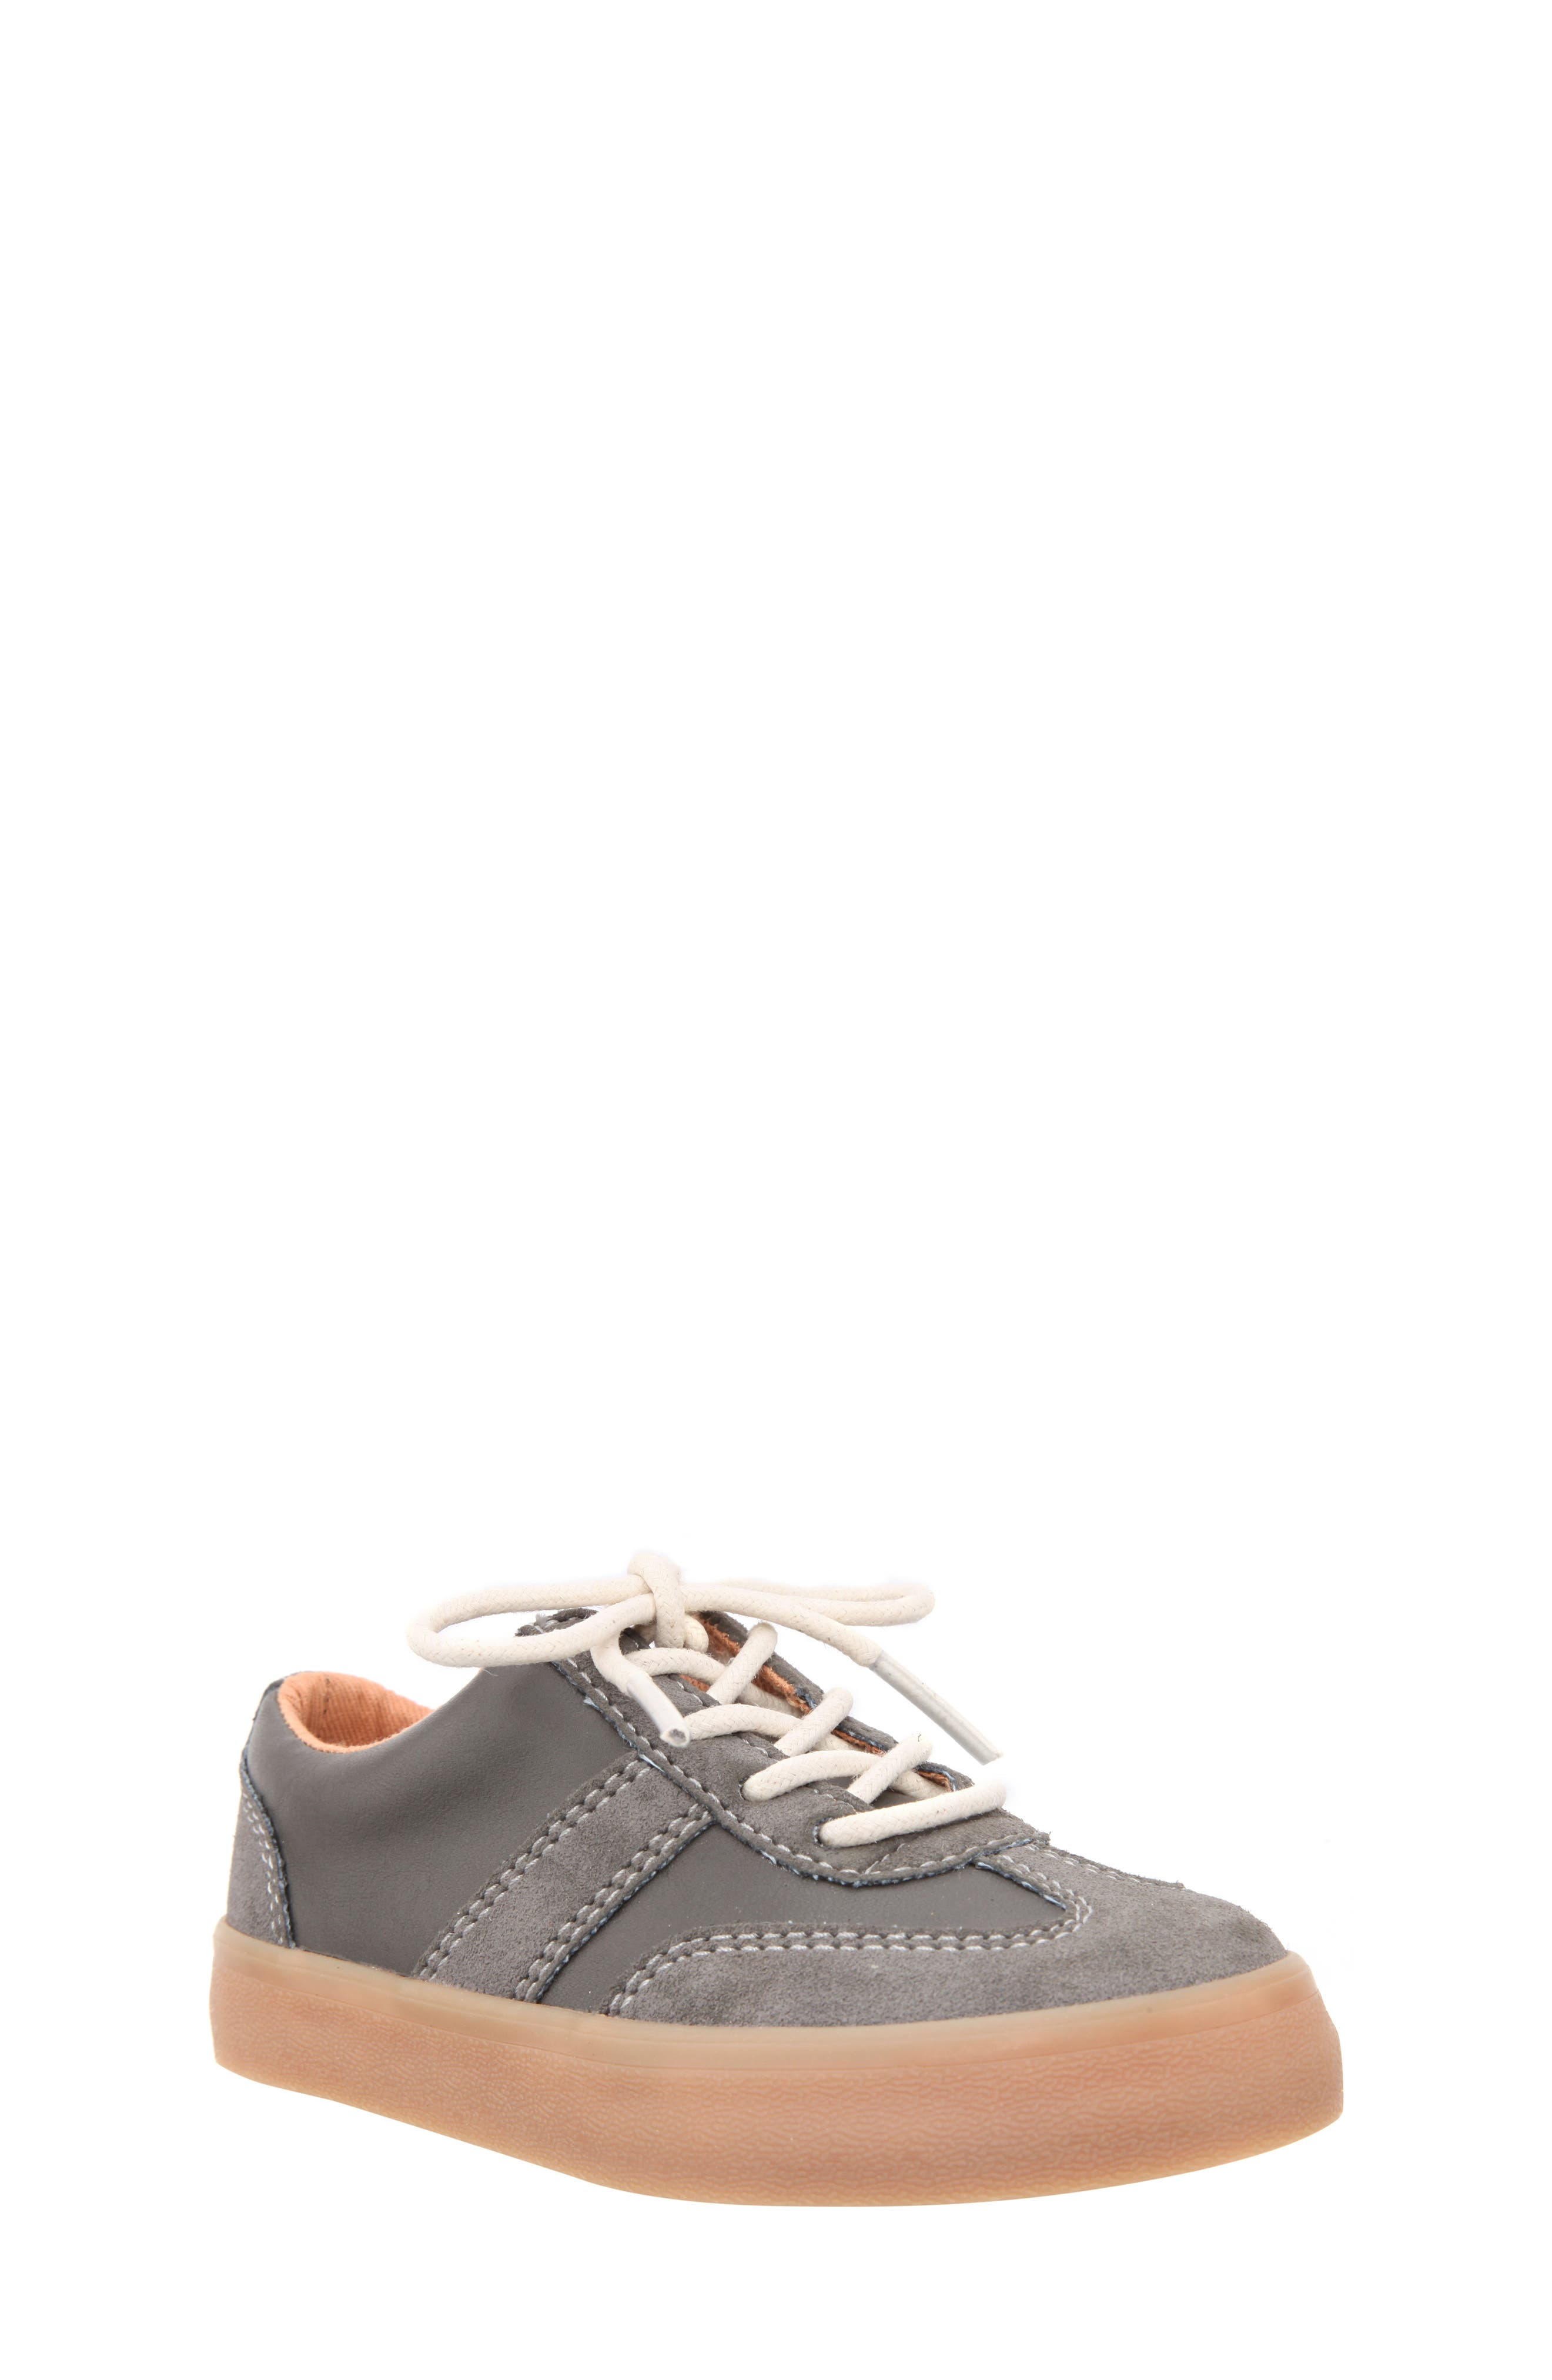 Neal Low Top Sneaker,                             Main thumbnail 1, color,                             Grey Suede